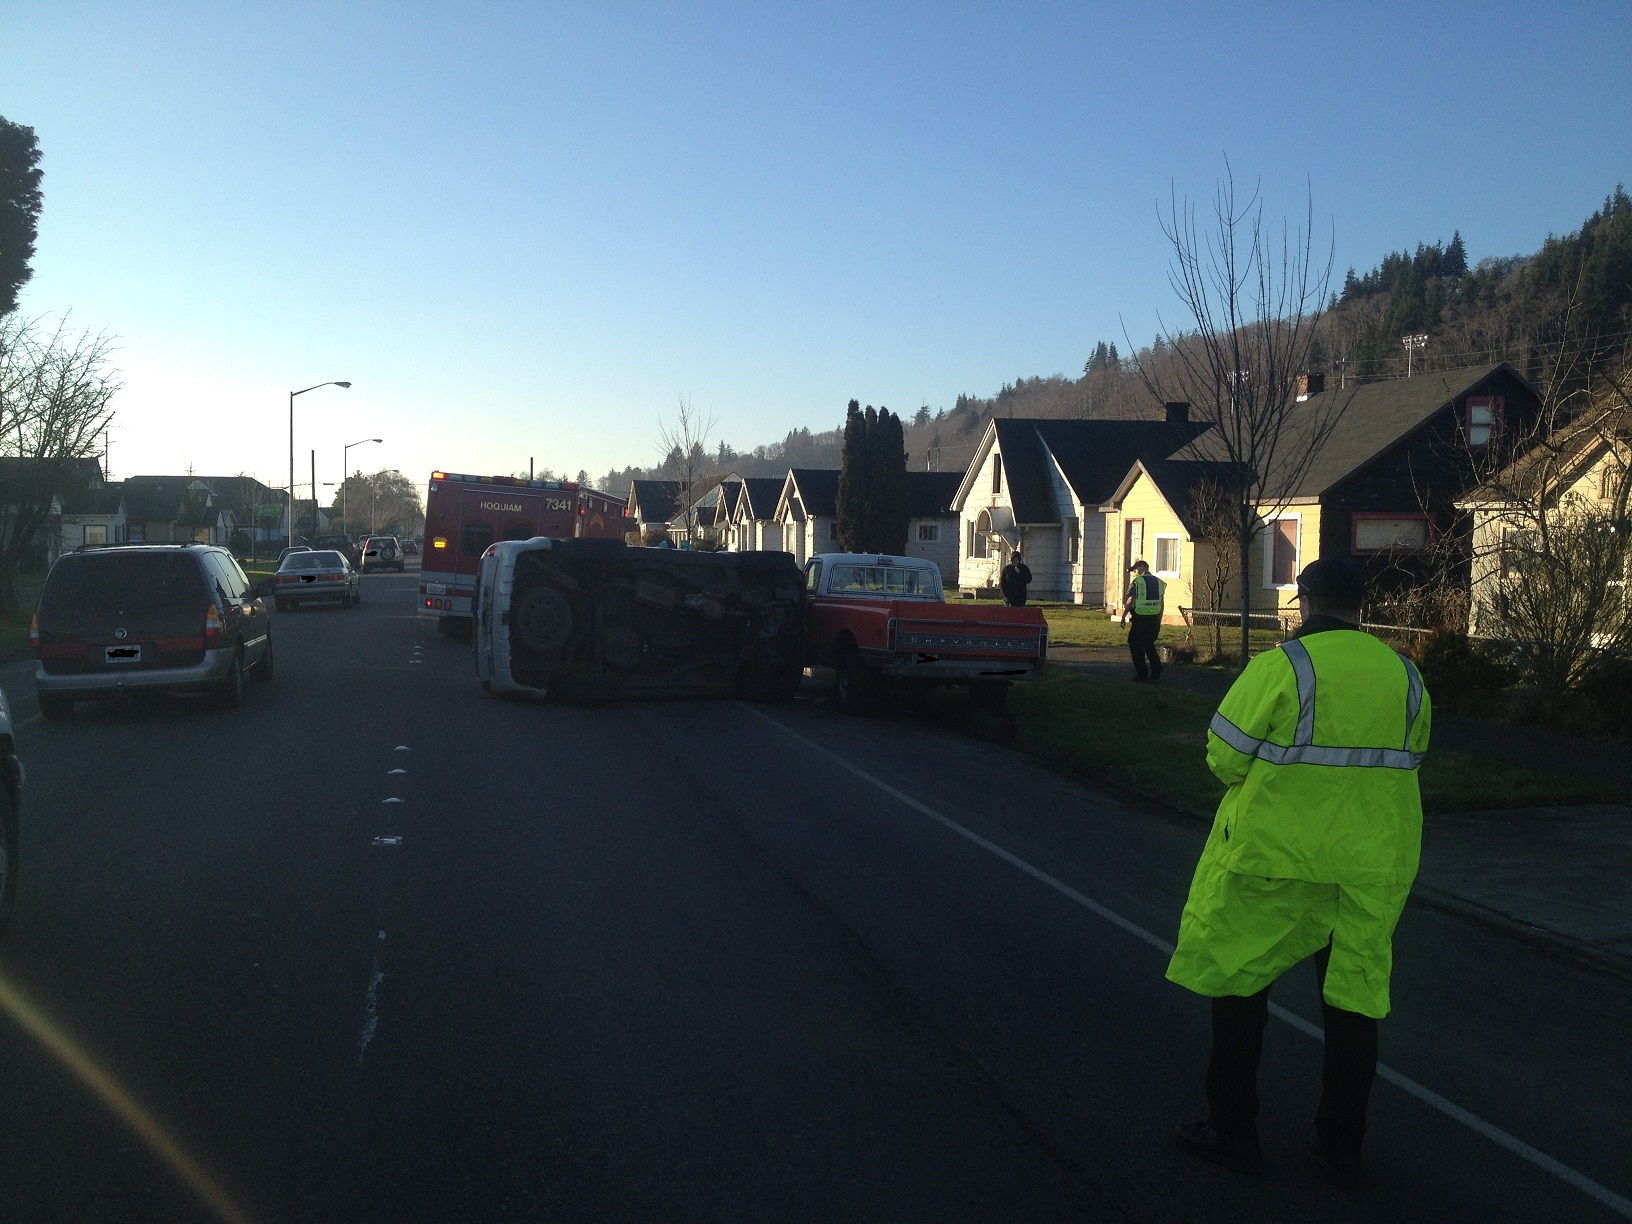 No injuries after SUV rolls in Hoquiam